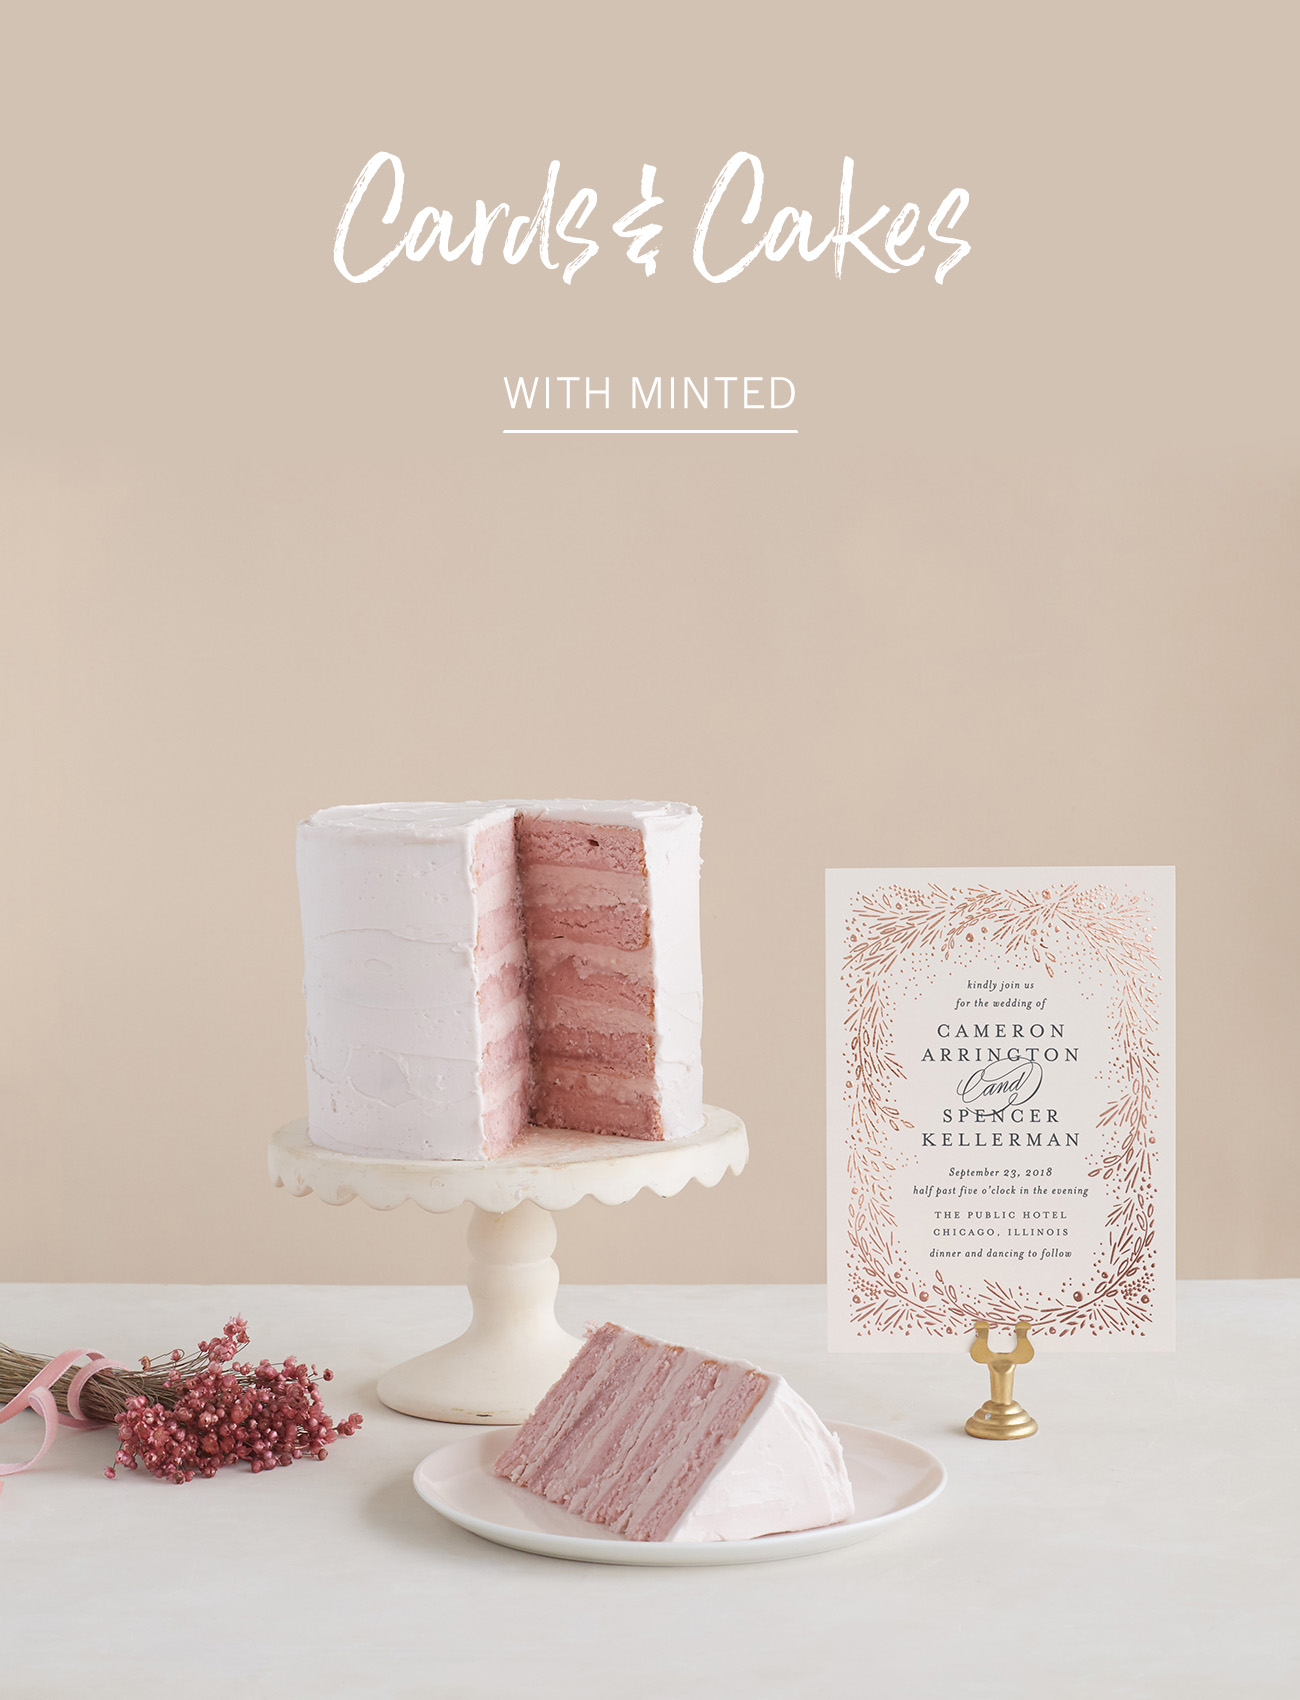 Cards and Cakes with Minted